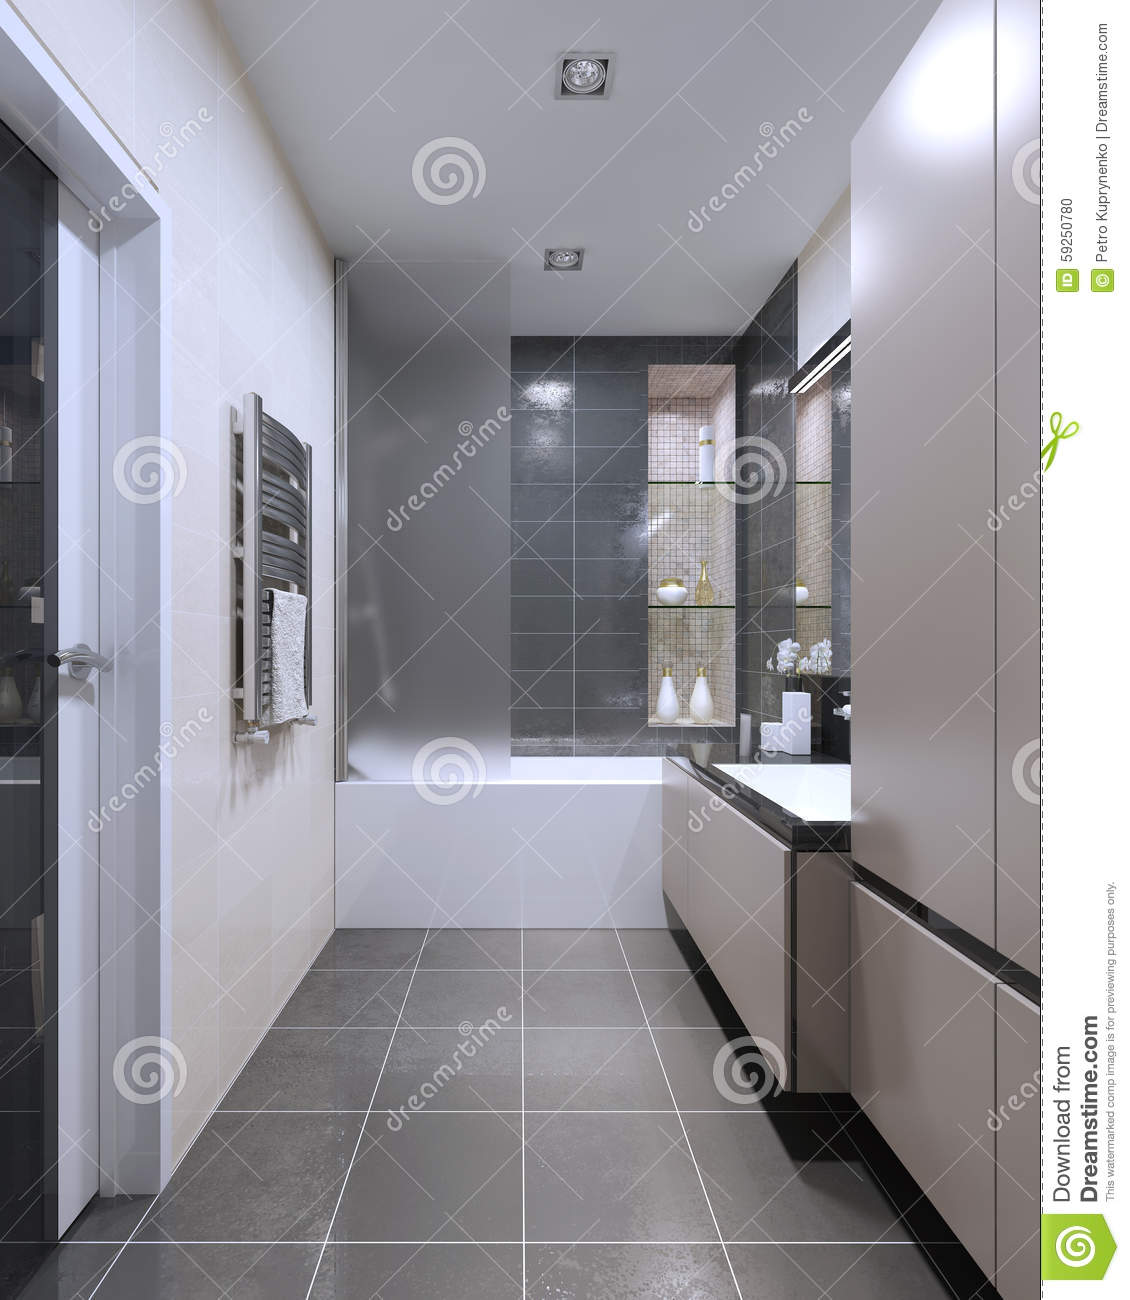 expensive high tech bathroom trend stock illustration